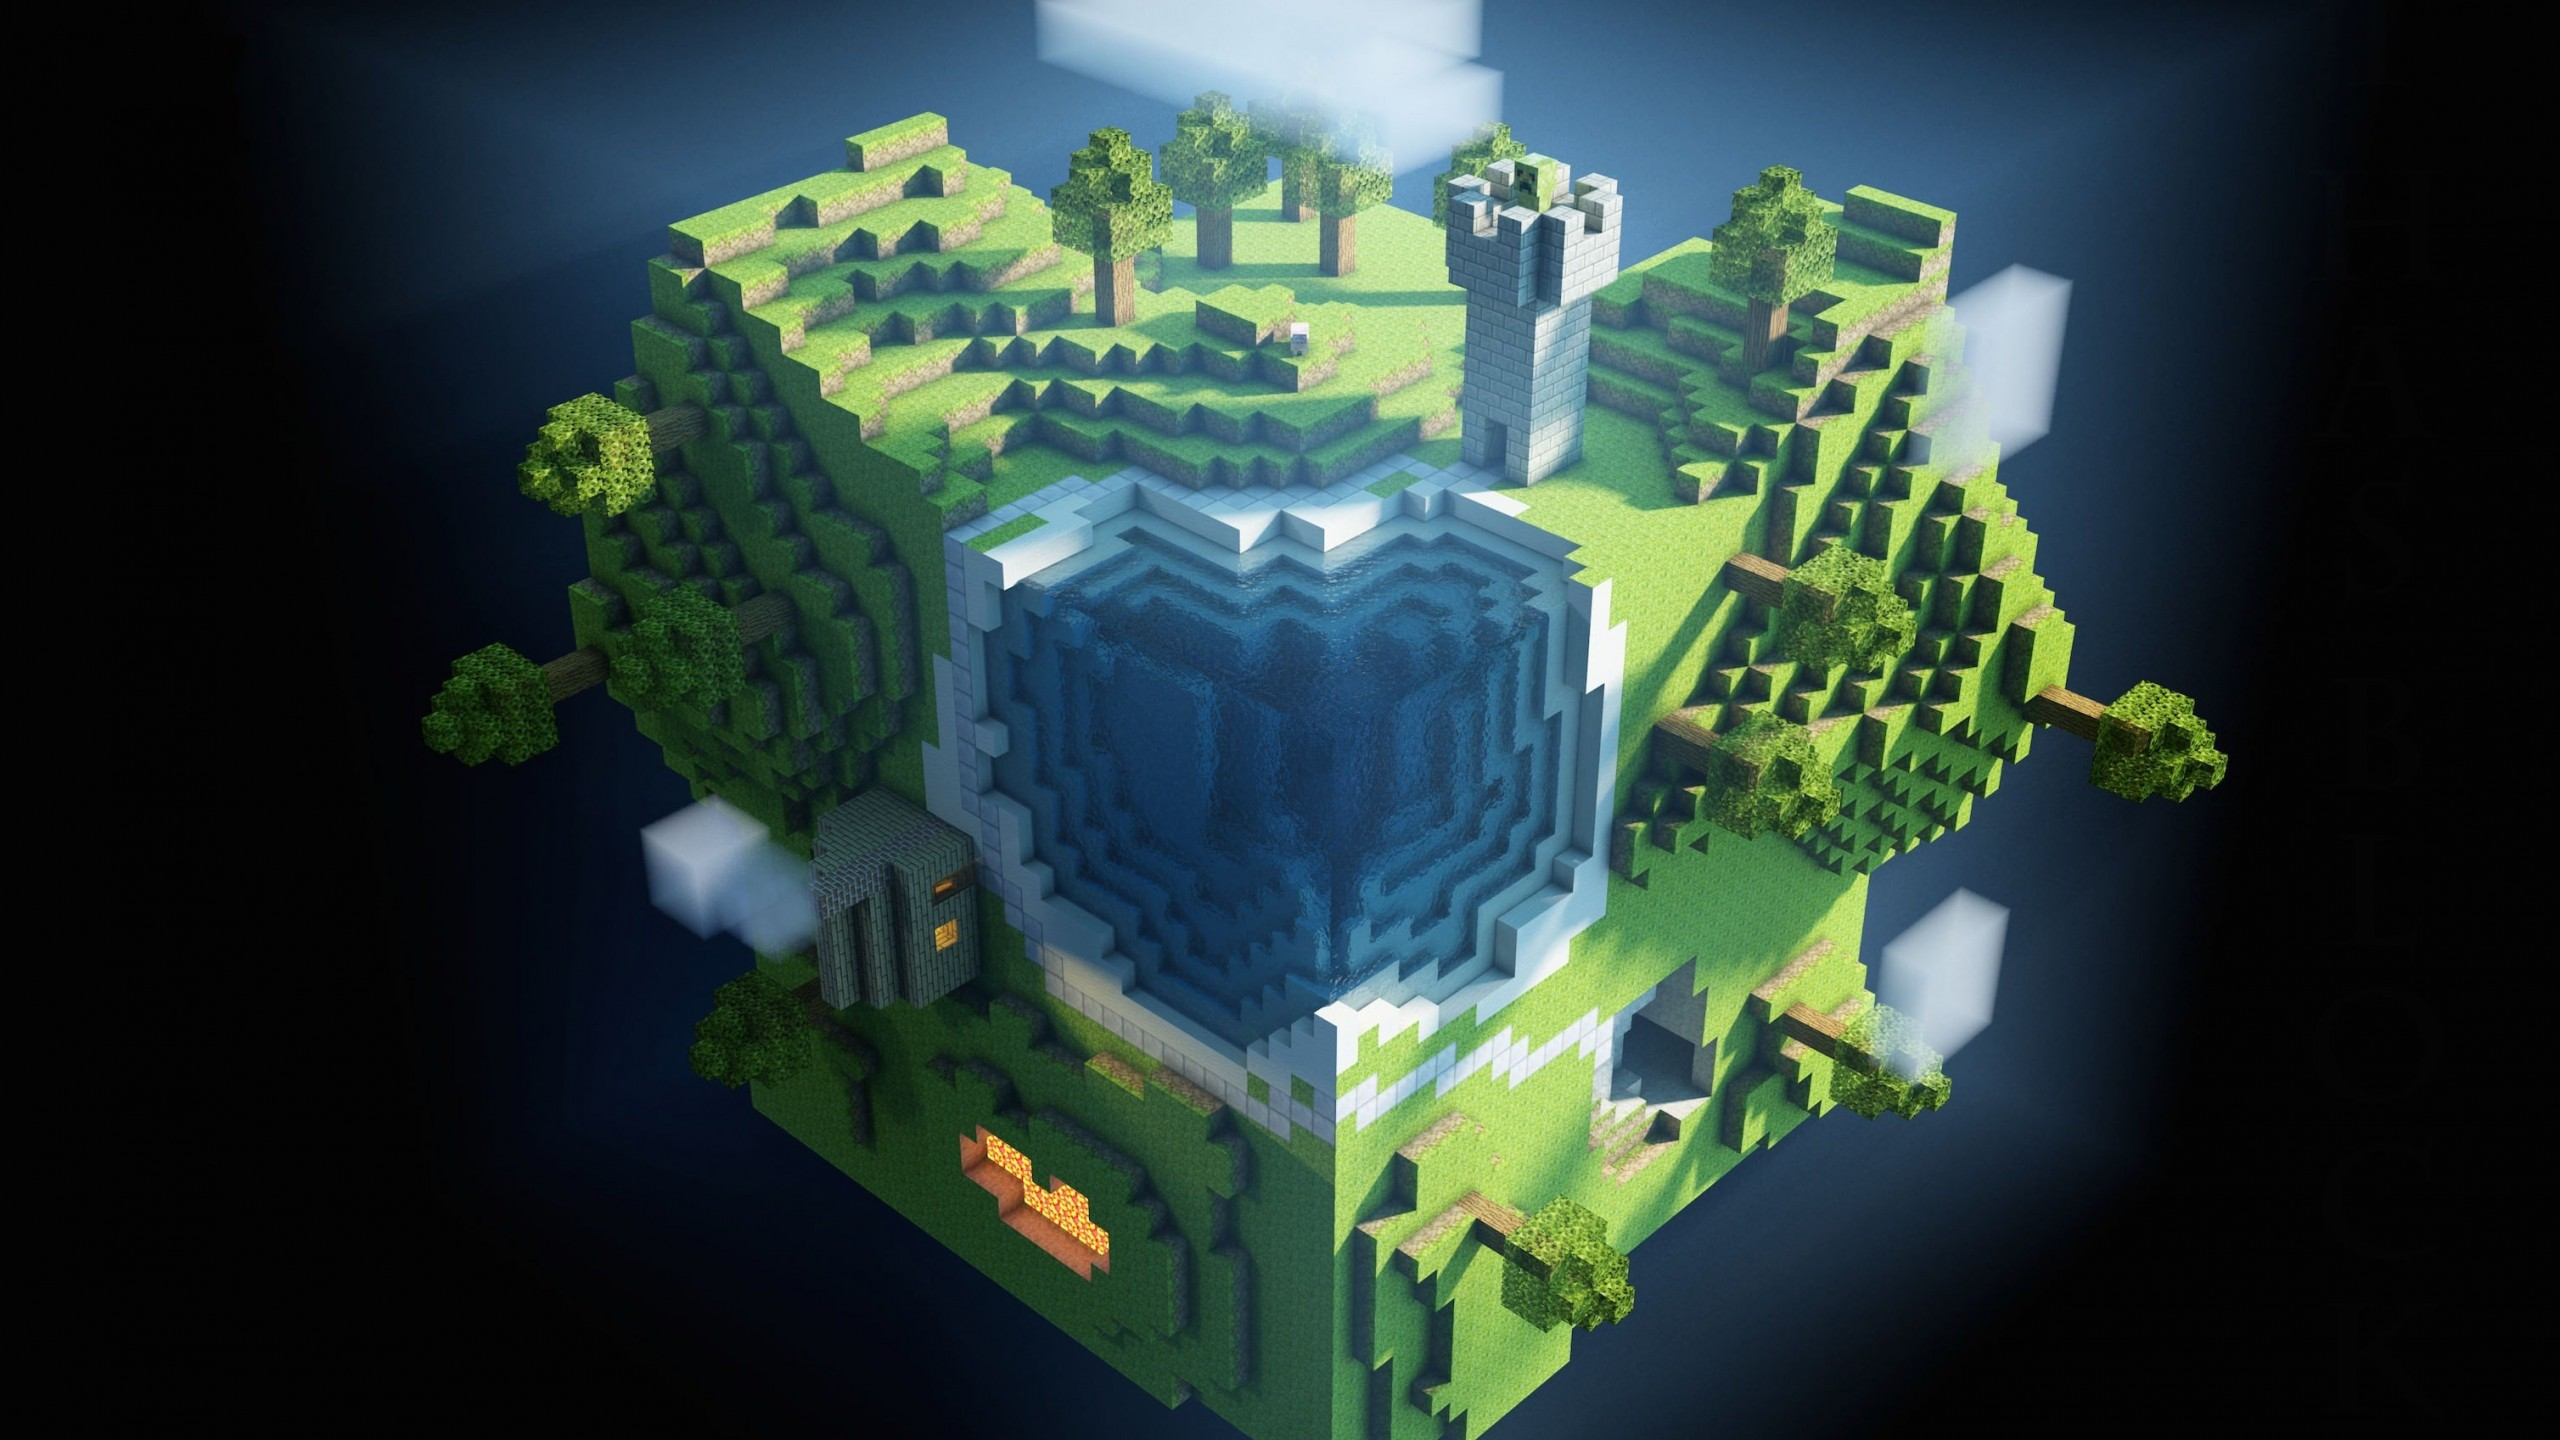 Planet Minecraft Wallpaper for Social Media YouTube Channel Art